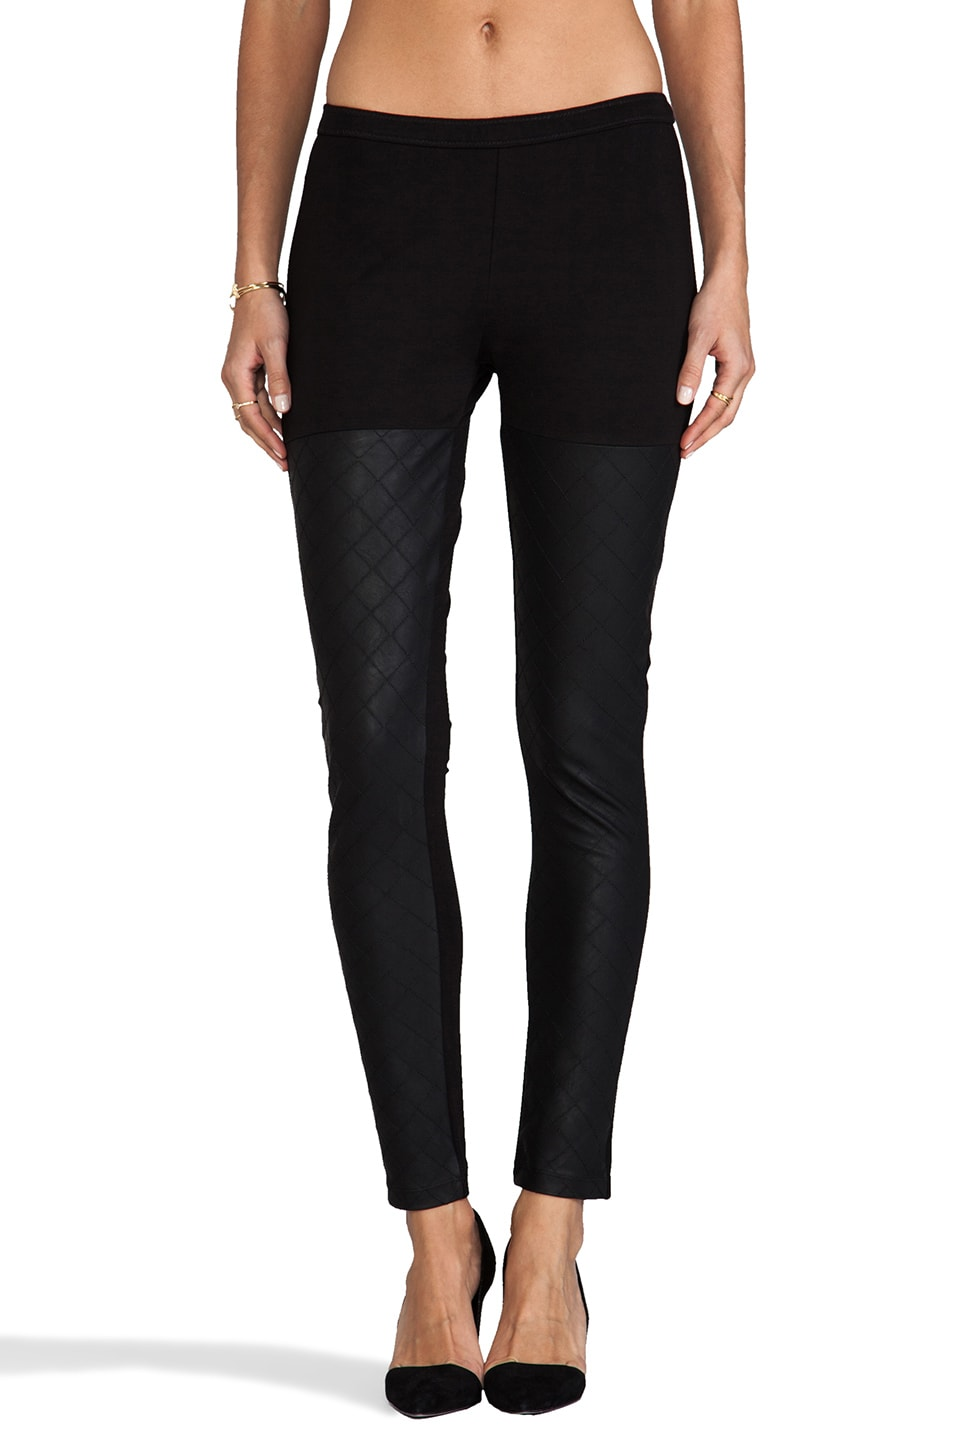 Dolce Vita Monsoon Faux Leather Legging in Black